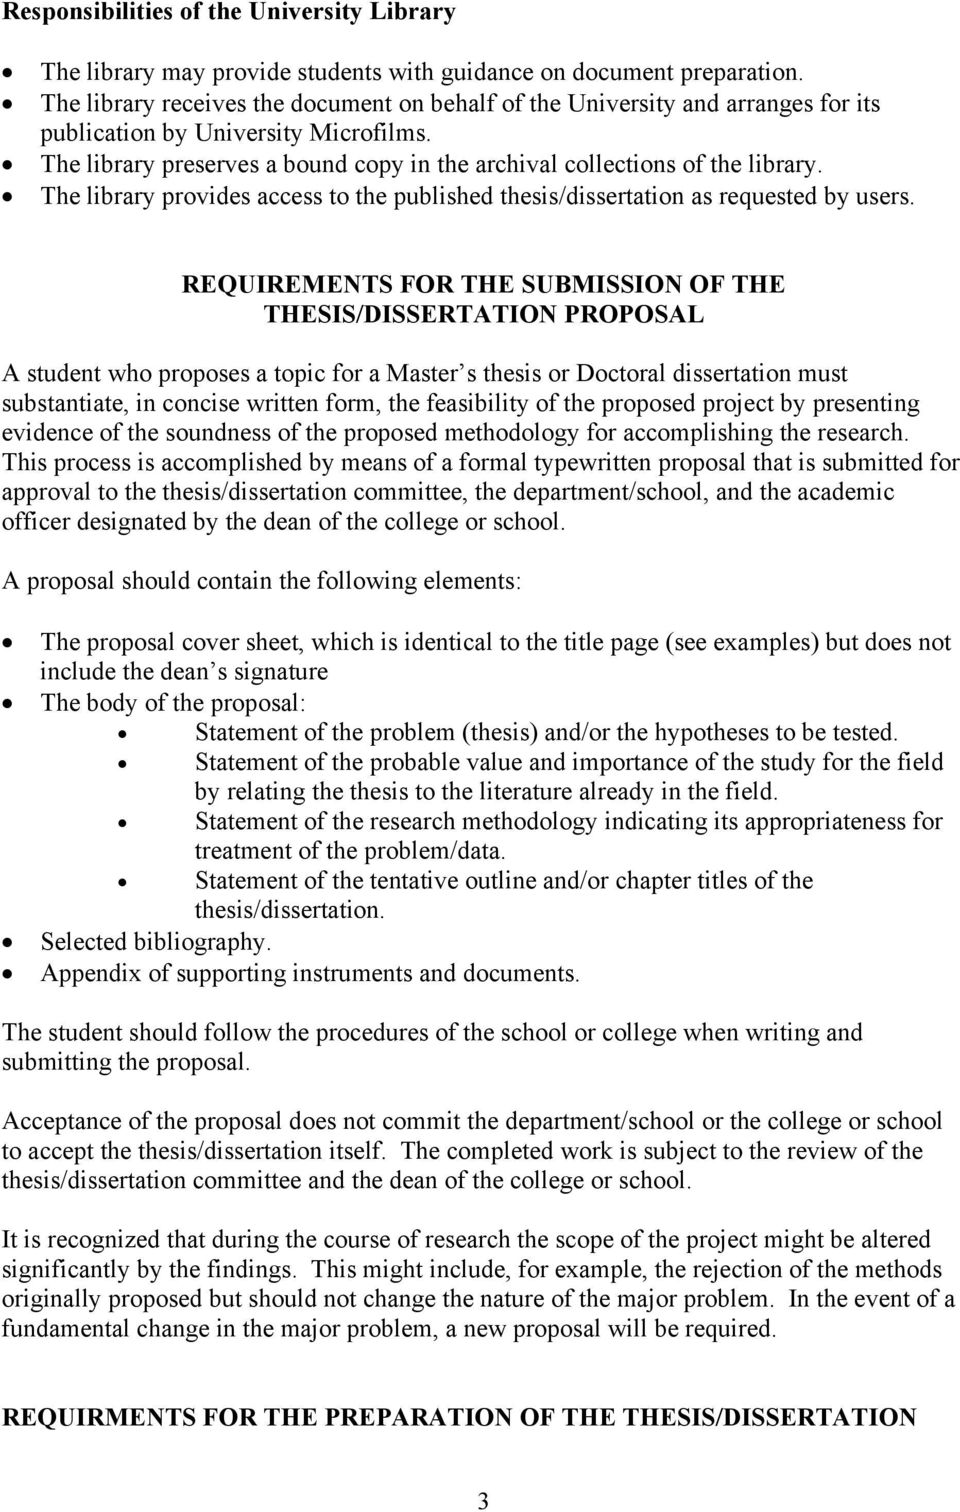 sports science dissertation proposals Write science dissertation through free science dissertation topics ideas, science dissertation proposal and examples.